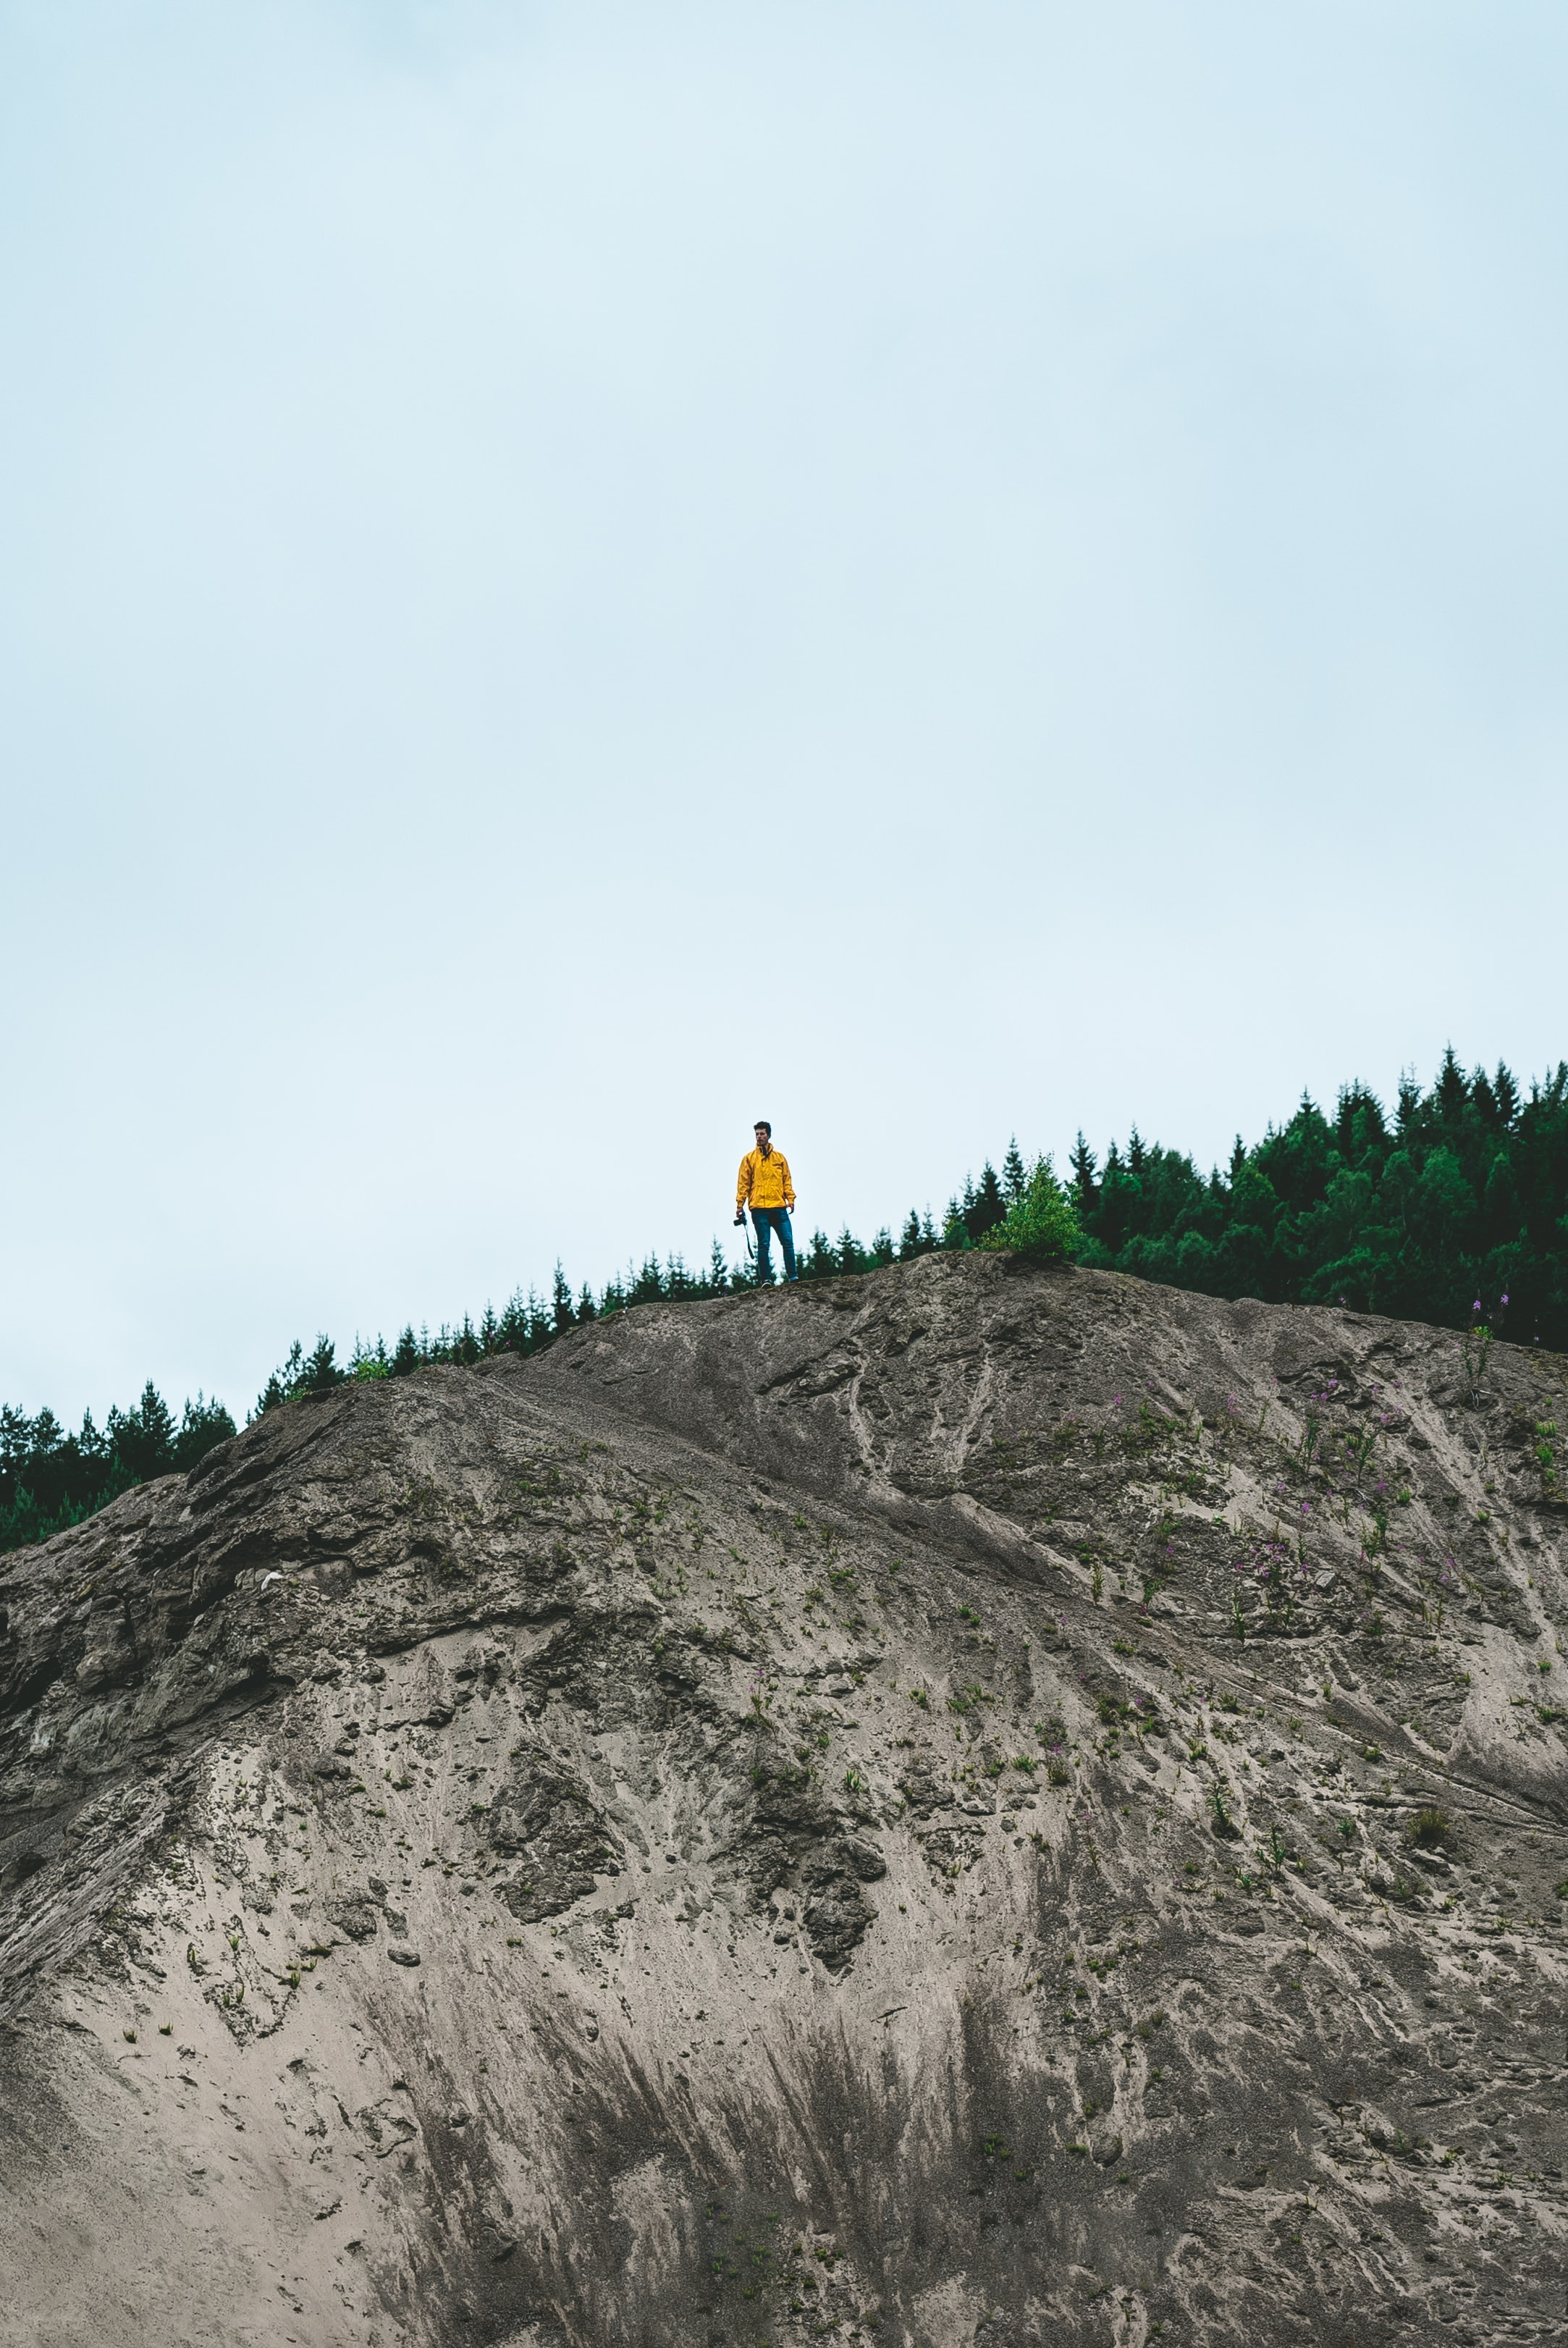 person standing on rock formation near green trees